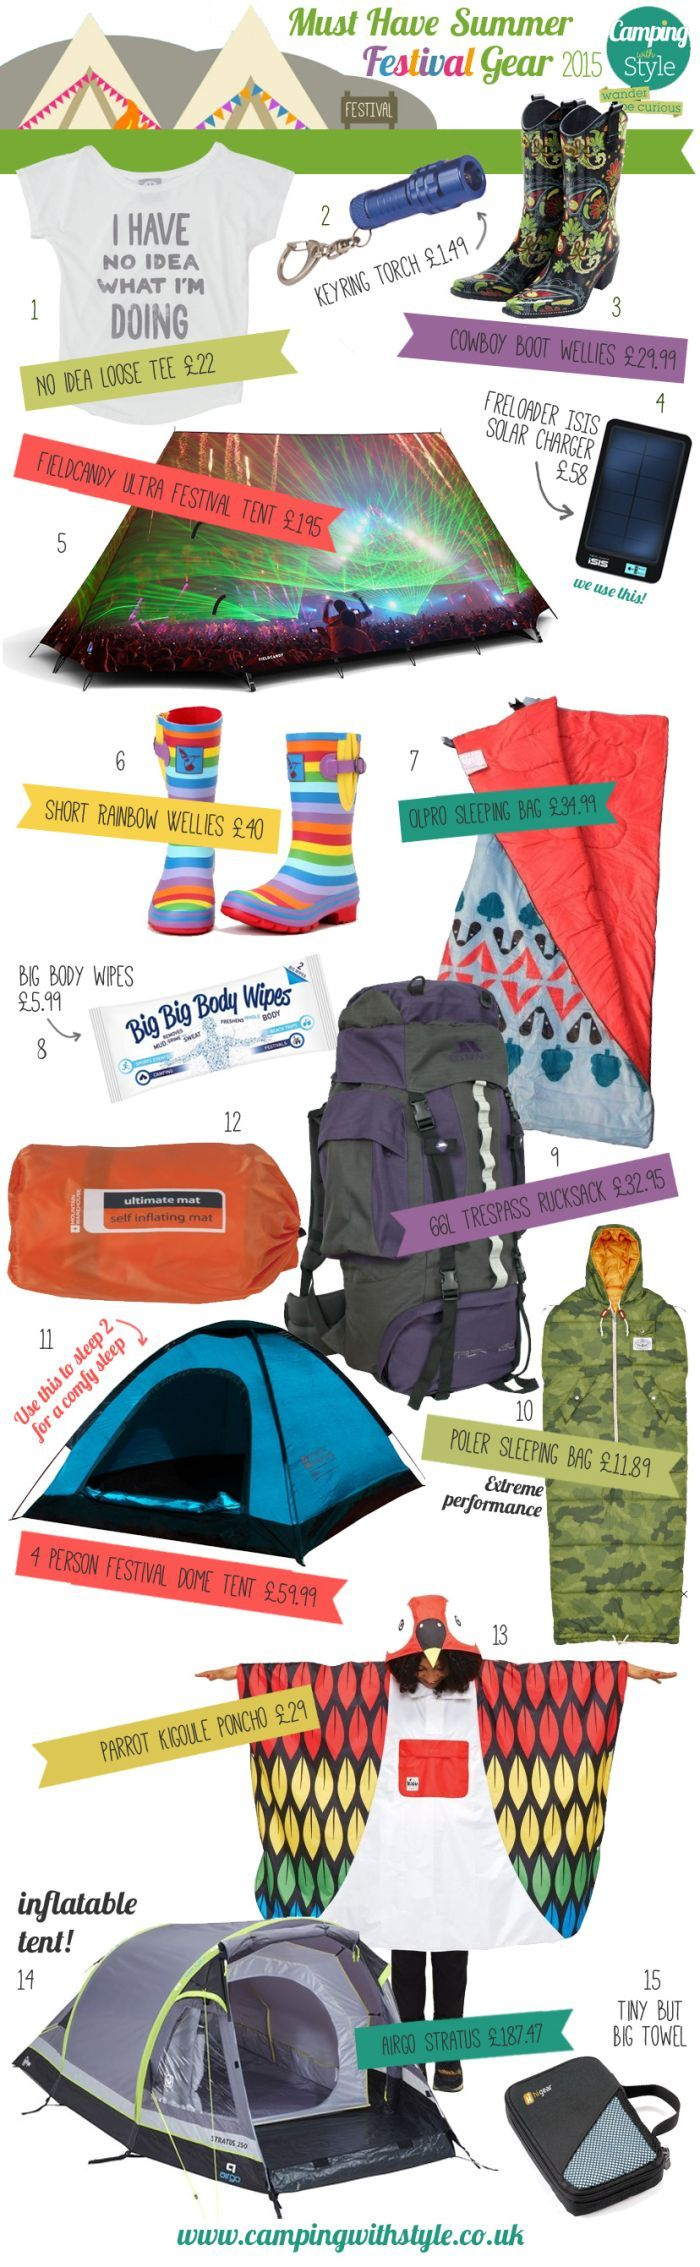 Must Have Summer Festival Camping Gear 2015